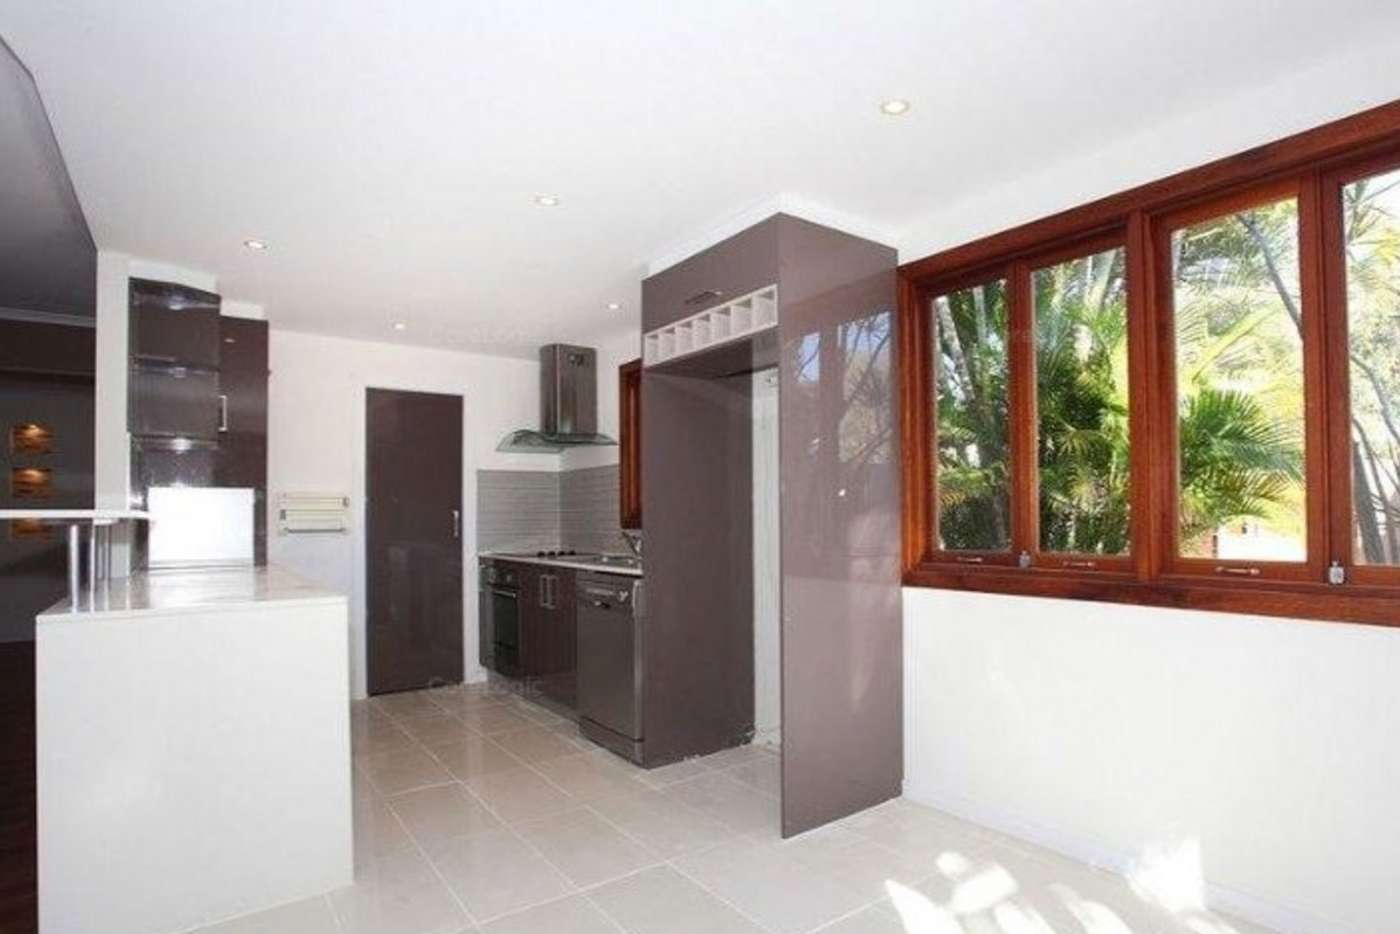 Main view of Homely house listing, 9 King Street, Southport QLD 4215